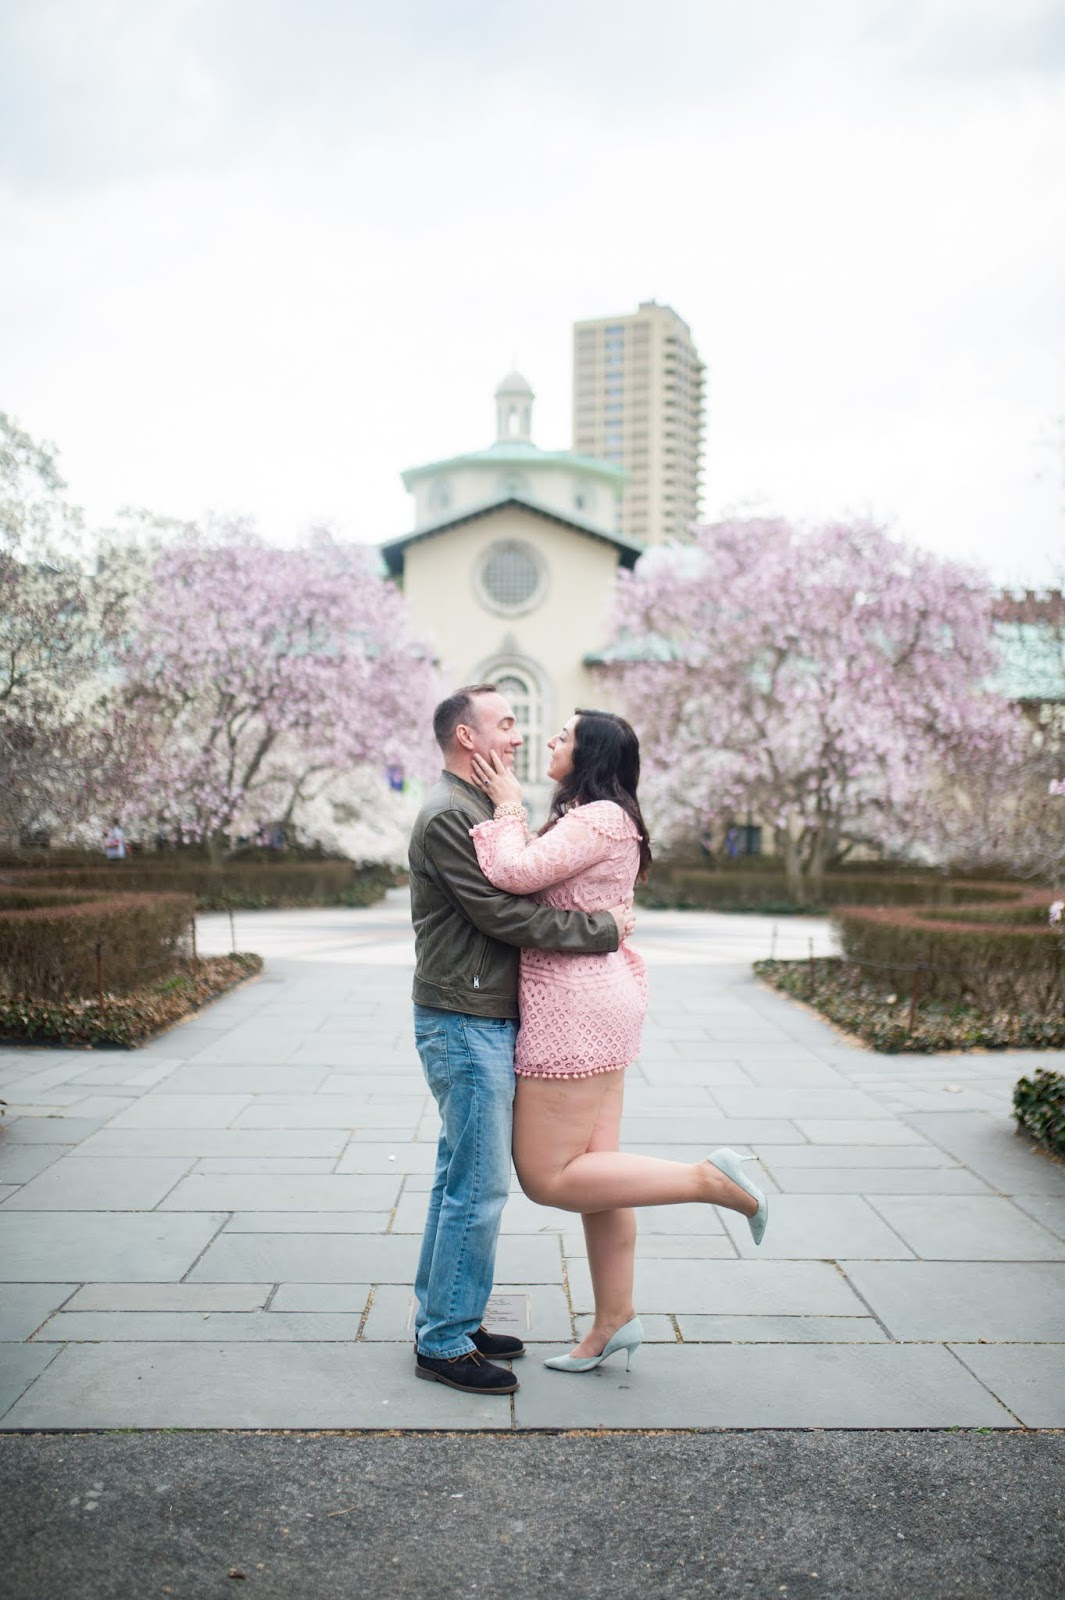 Alexander Cripps and Thea Domber engagement session Brooklyn Botanical Gardens April 13 2018